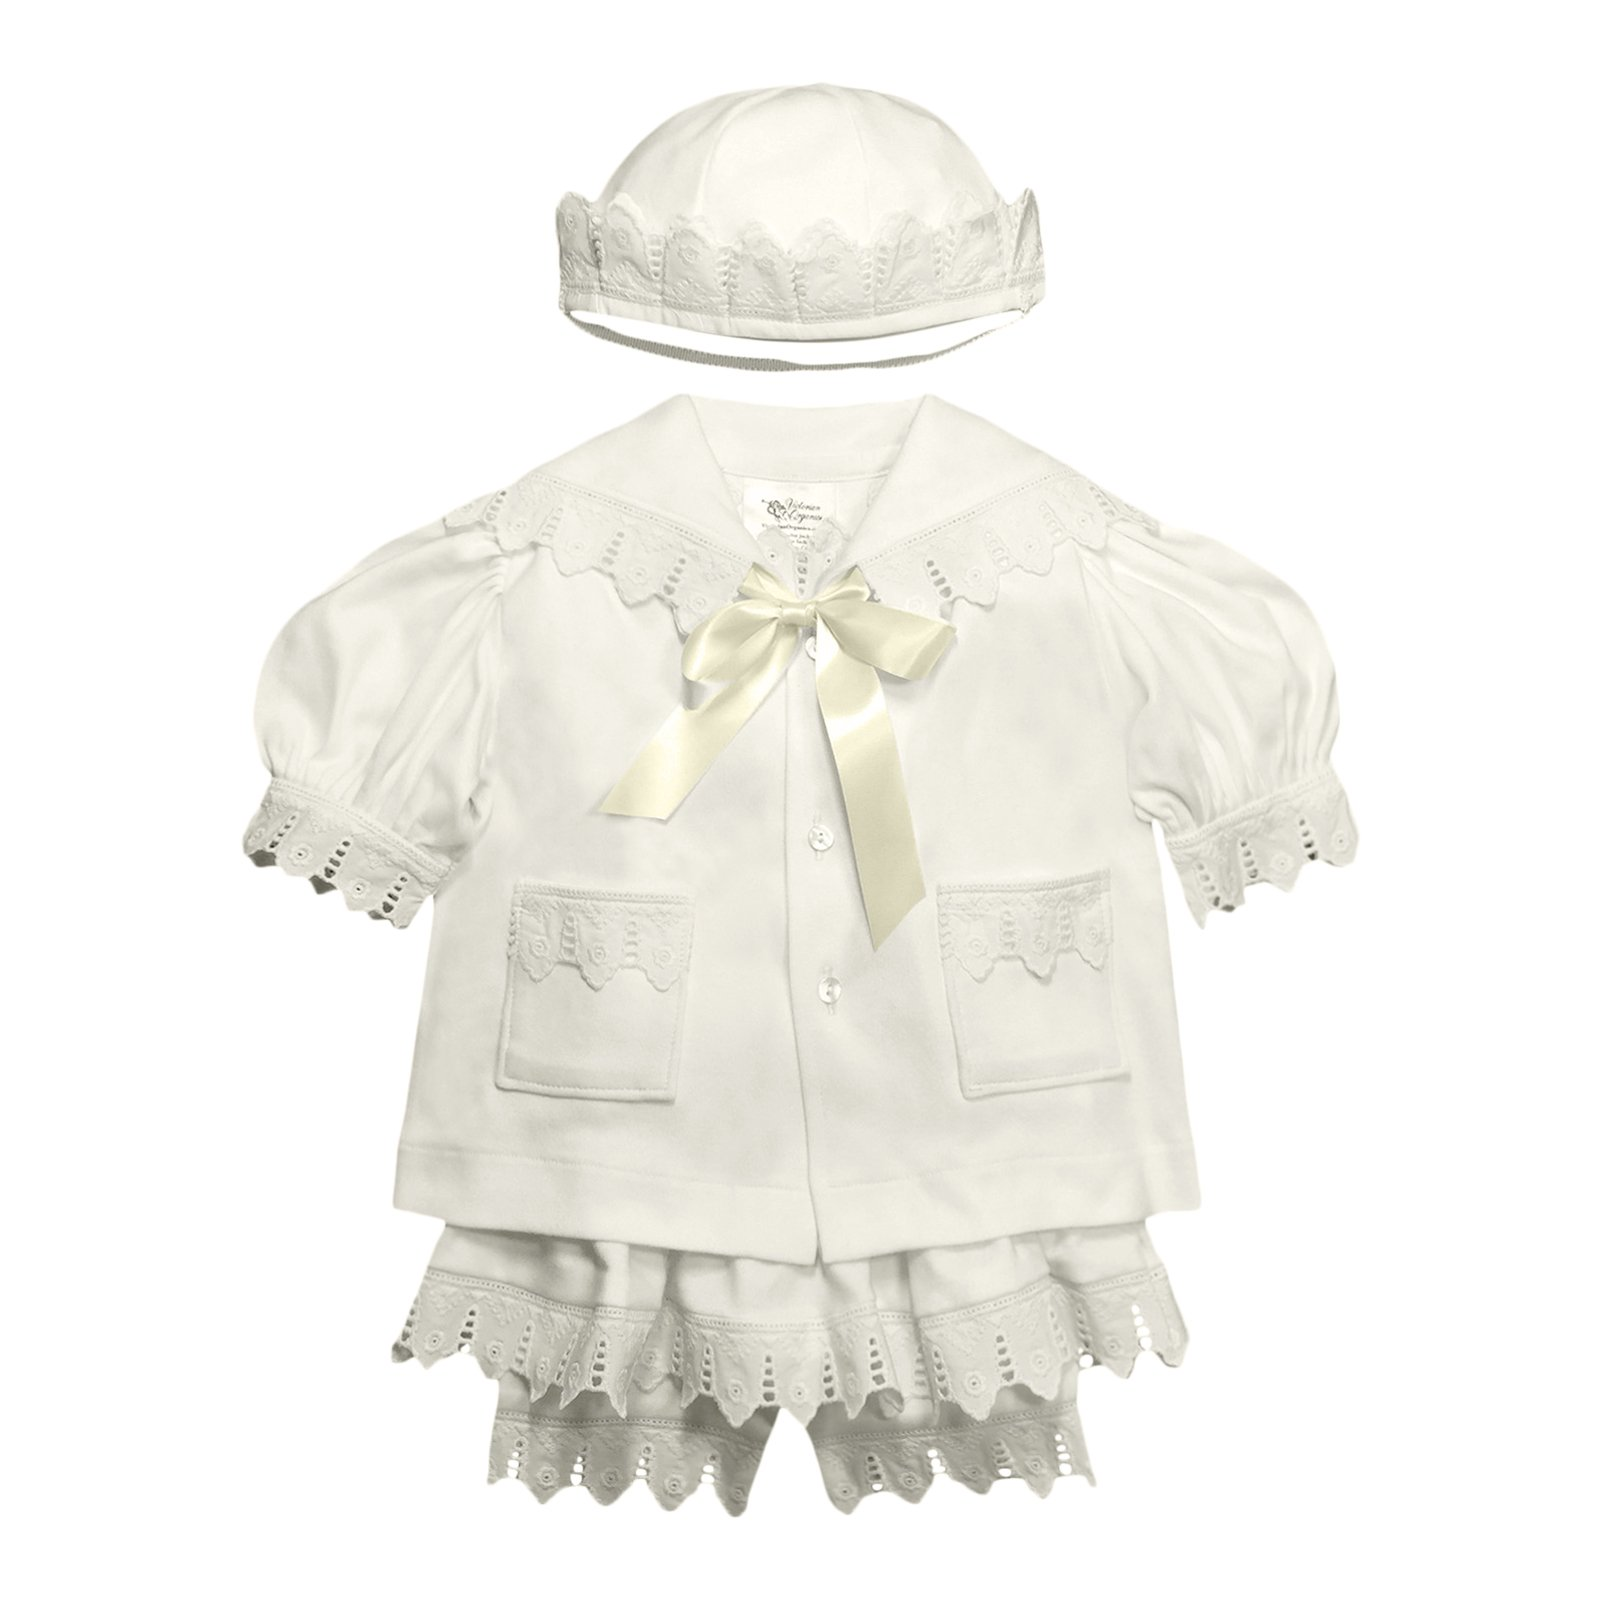 Victorian Organics Baby Girl Sailor Set 4 Piece Organic Cotton Knit and Eyelet Lace Trim Jacket Hat Dress and Bloomers (NB 0-3 months)